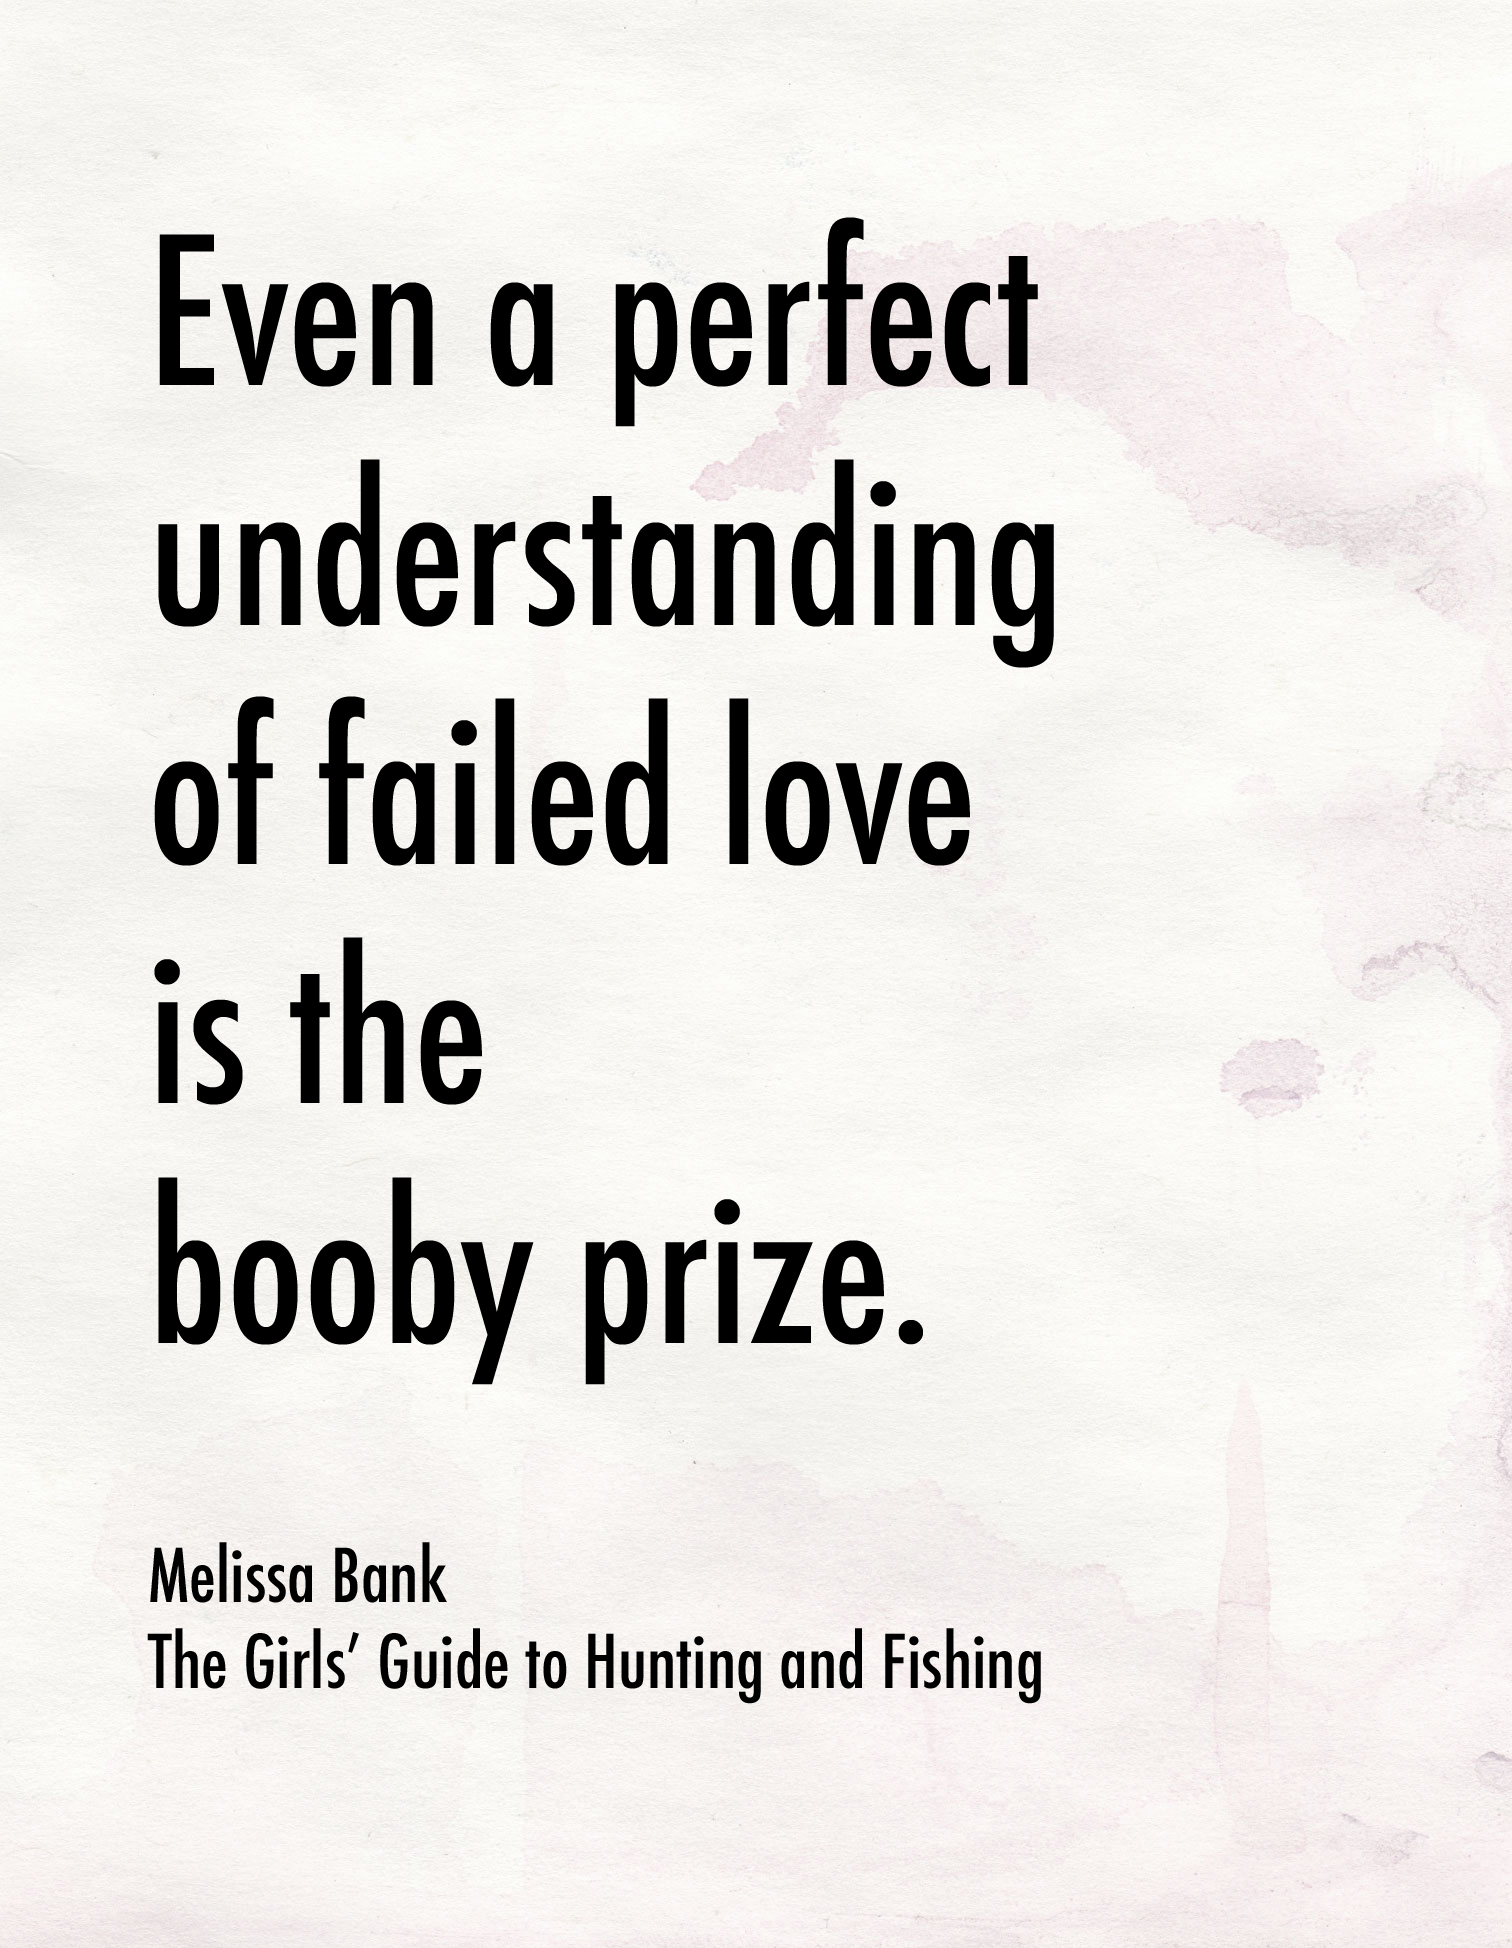 Love Fishing Quotes The Girls' Guide To Hunting And Fishing  Jillian Lorraine